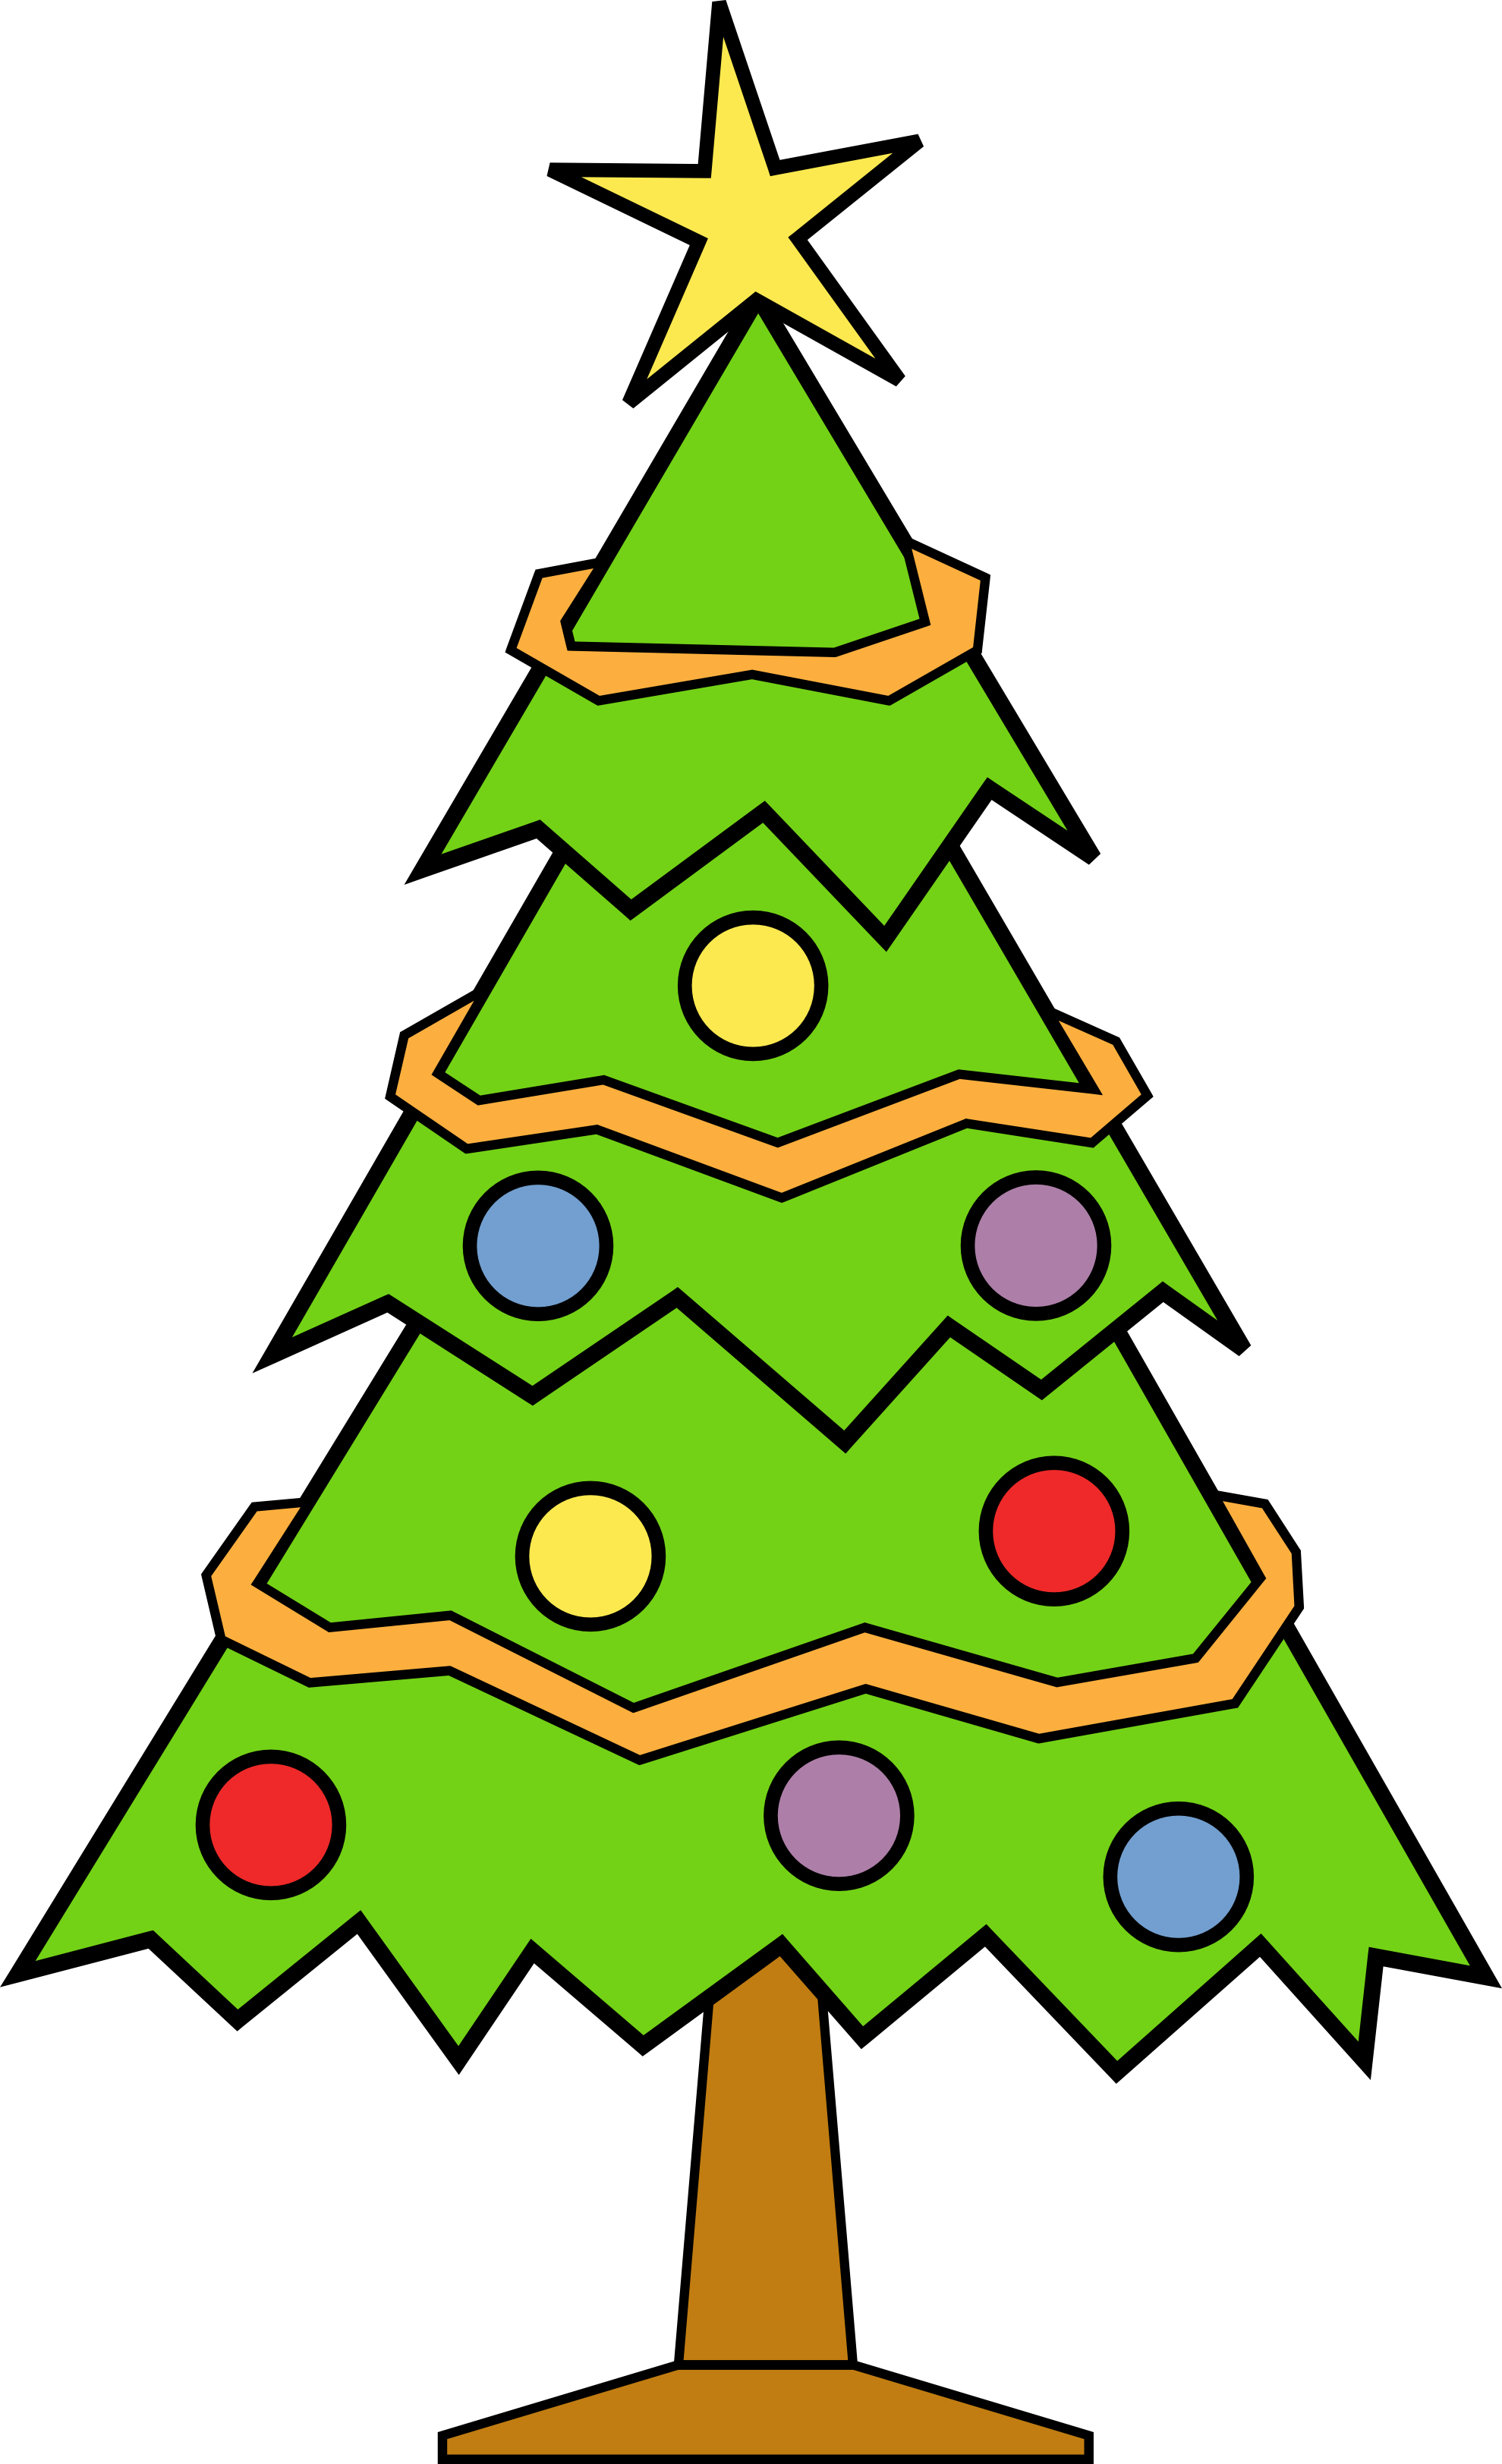 Grinch clipart door. Free download tree for